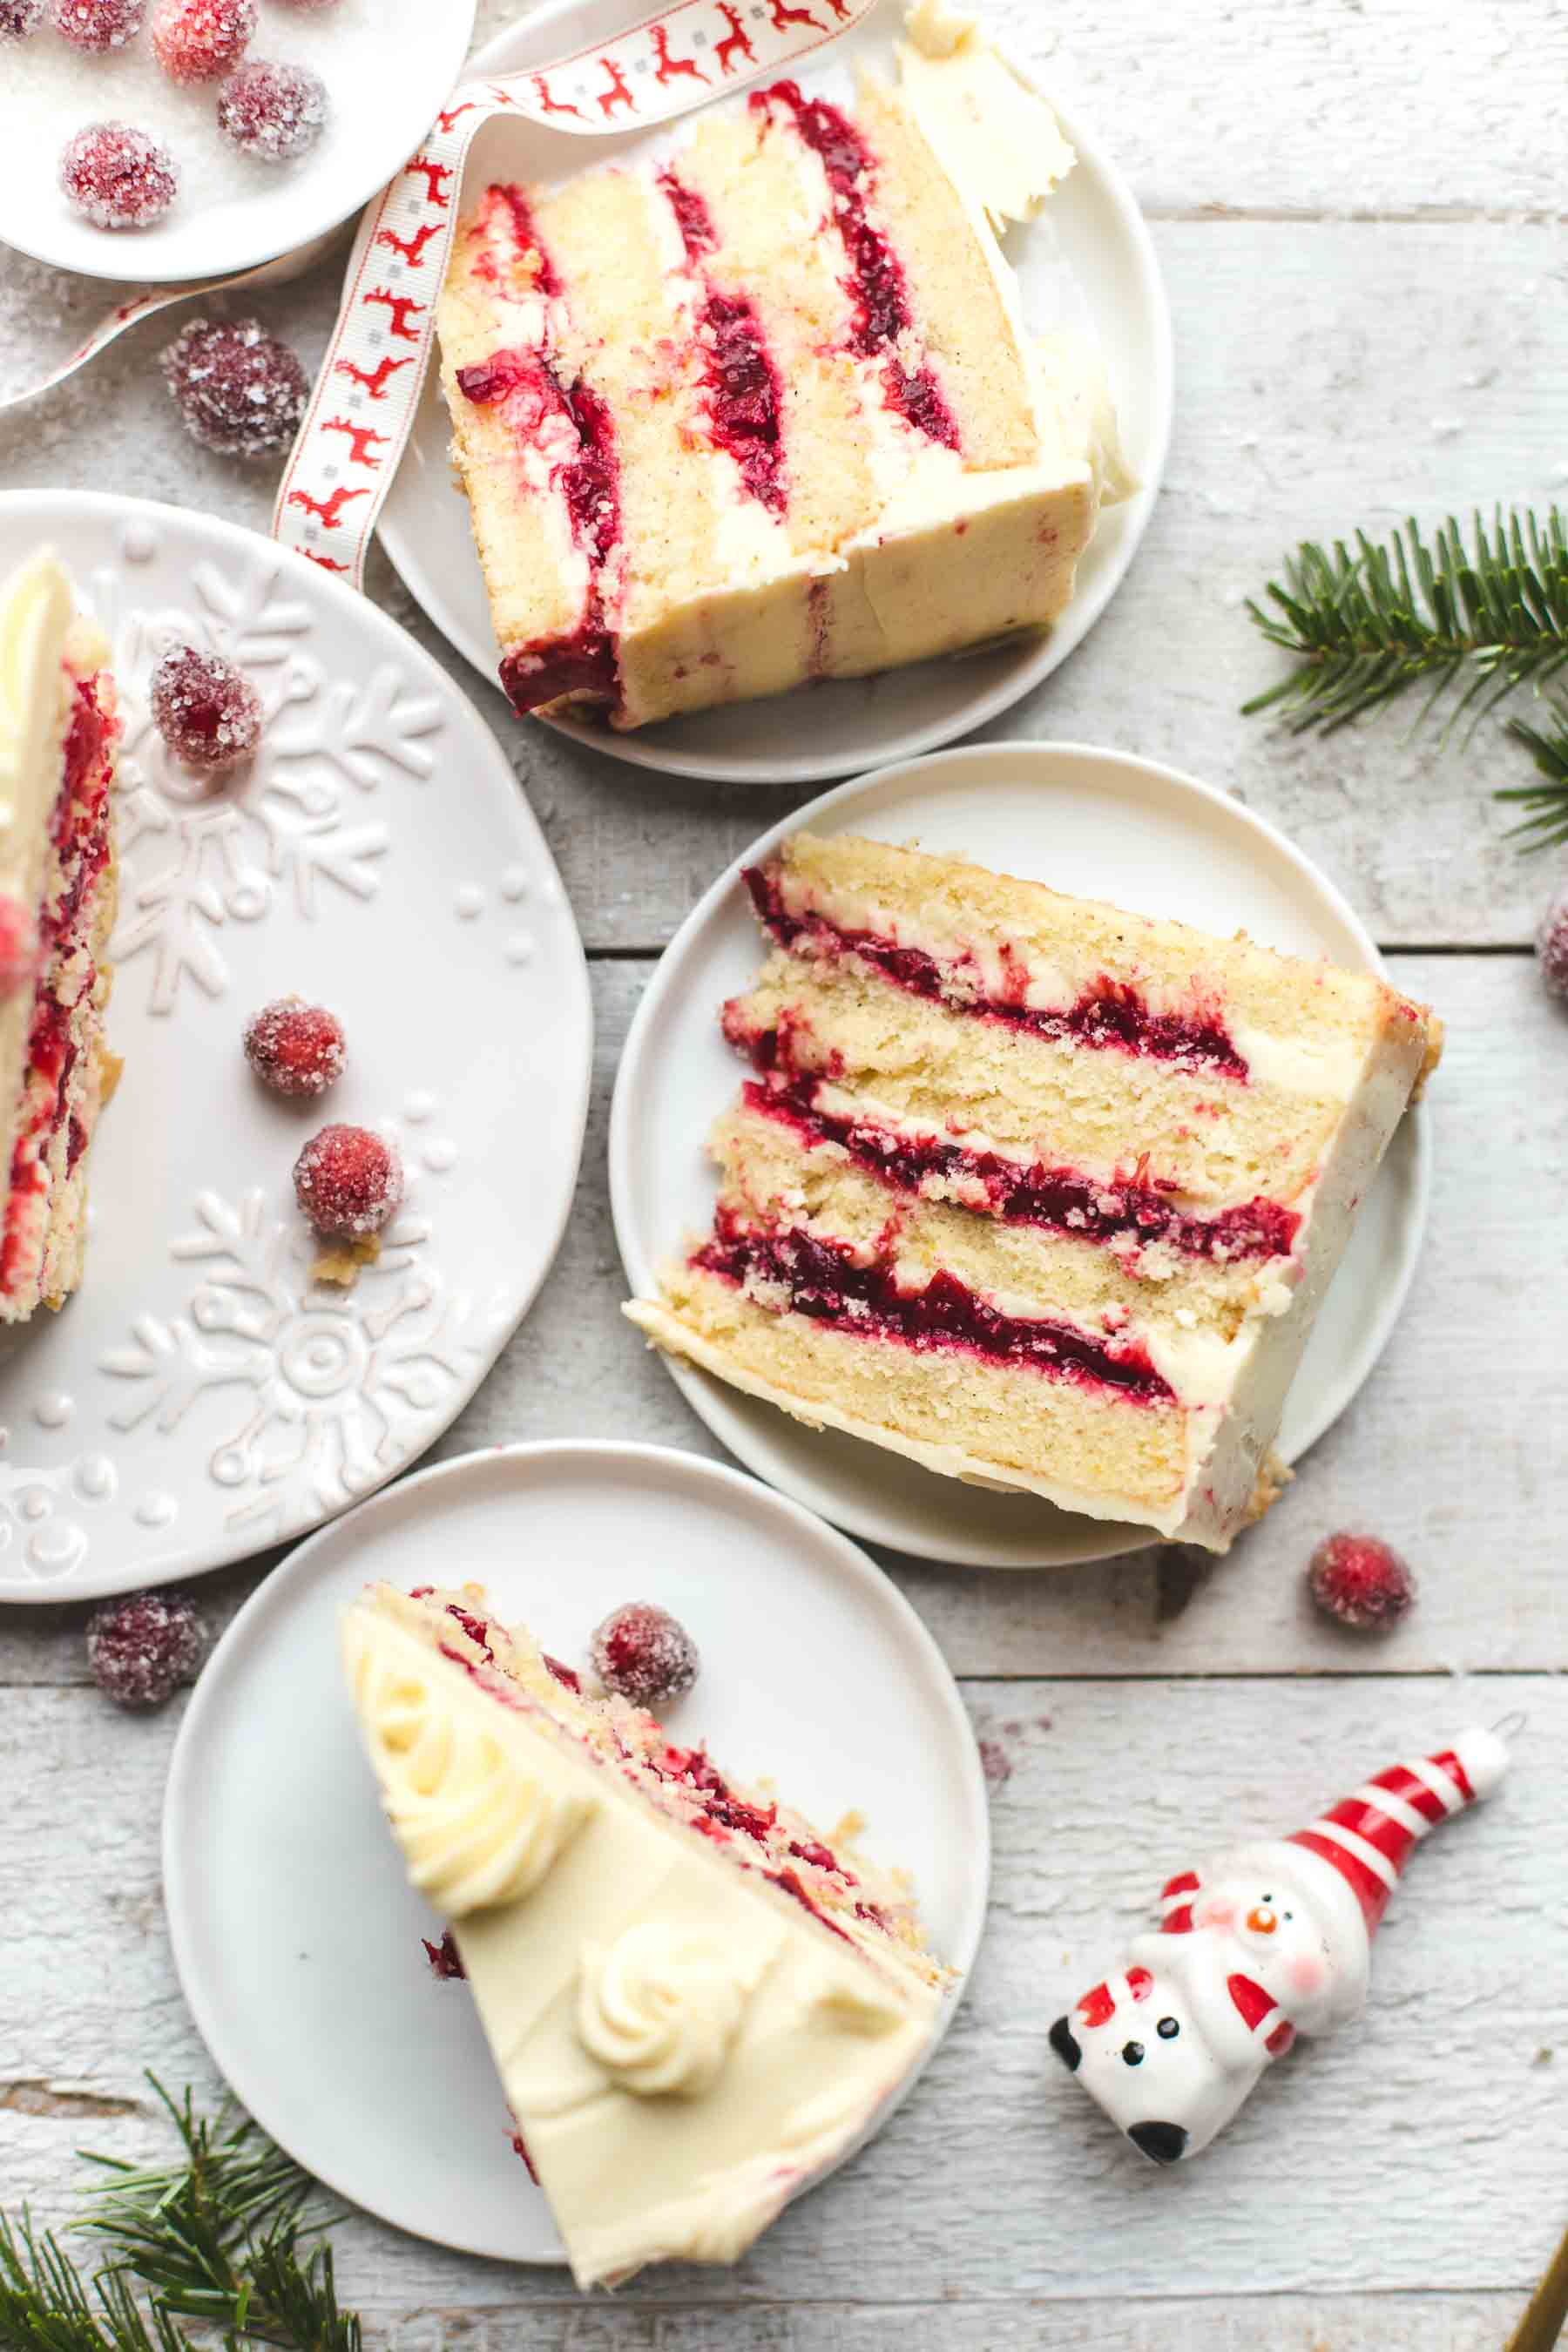 Different slices of Cranberry Orange Cake with White Chocolate Frosting on different plates